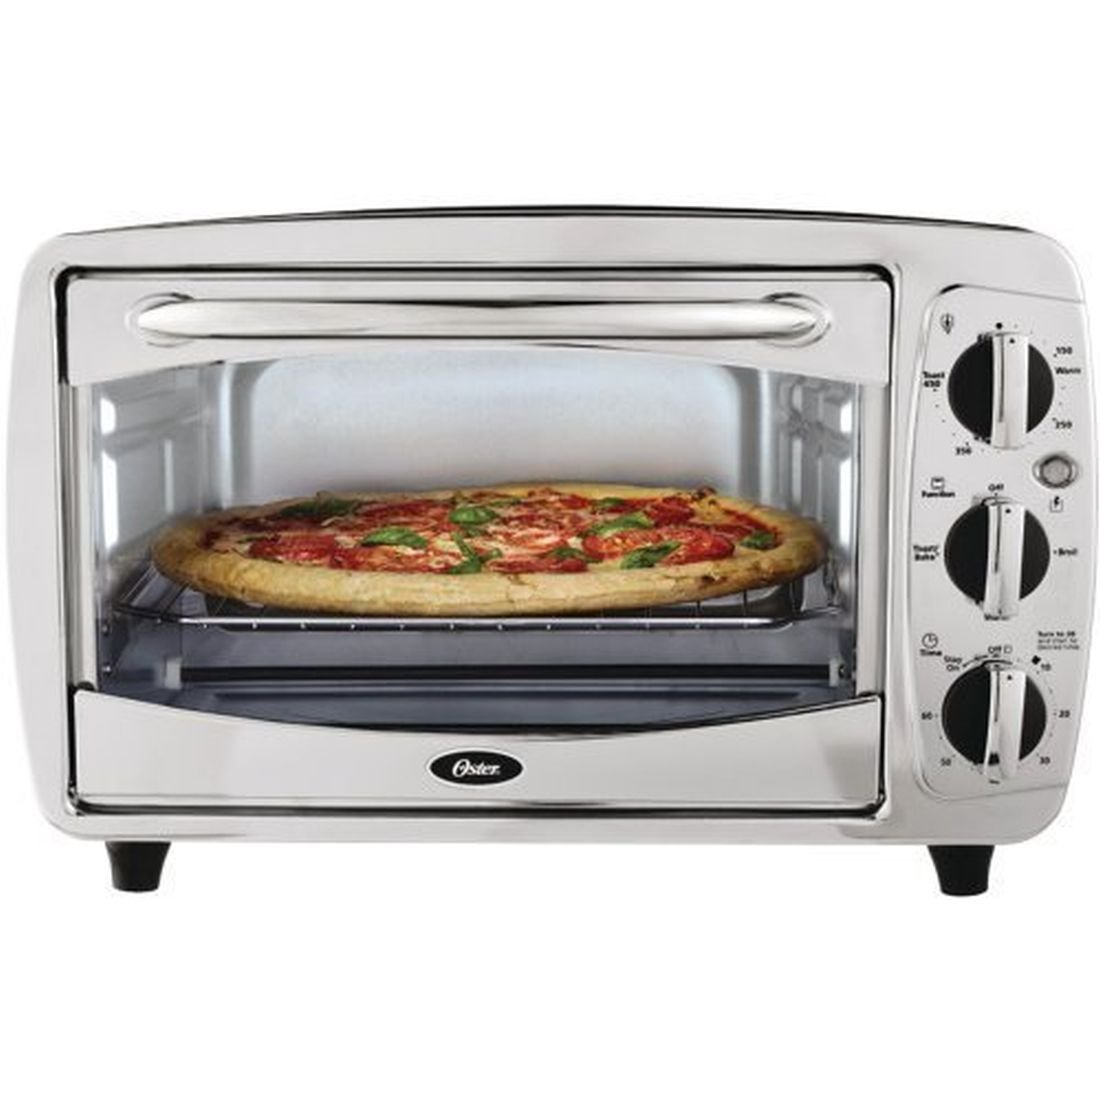 Oster Convection Countertop Oven Stainless